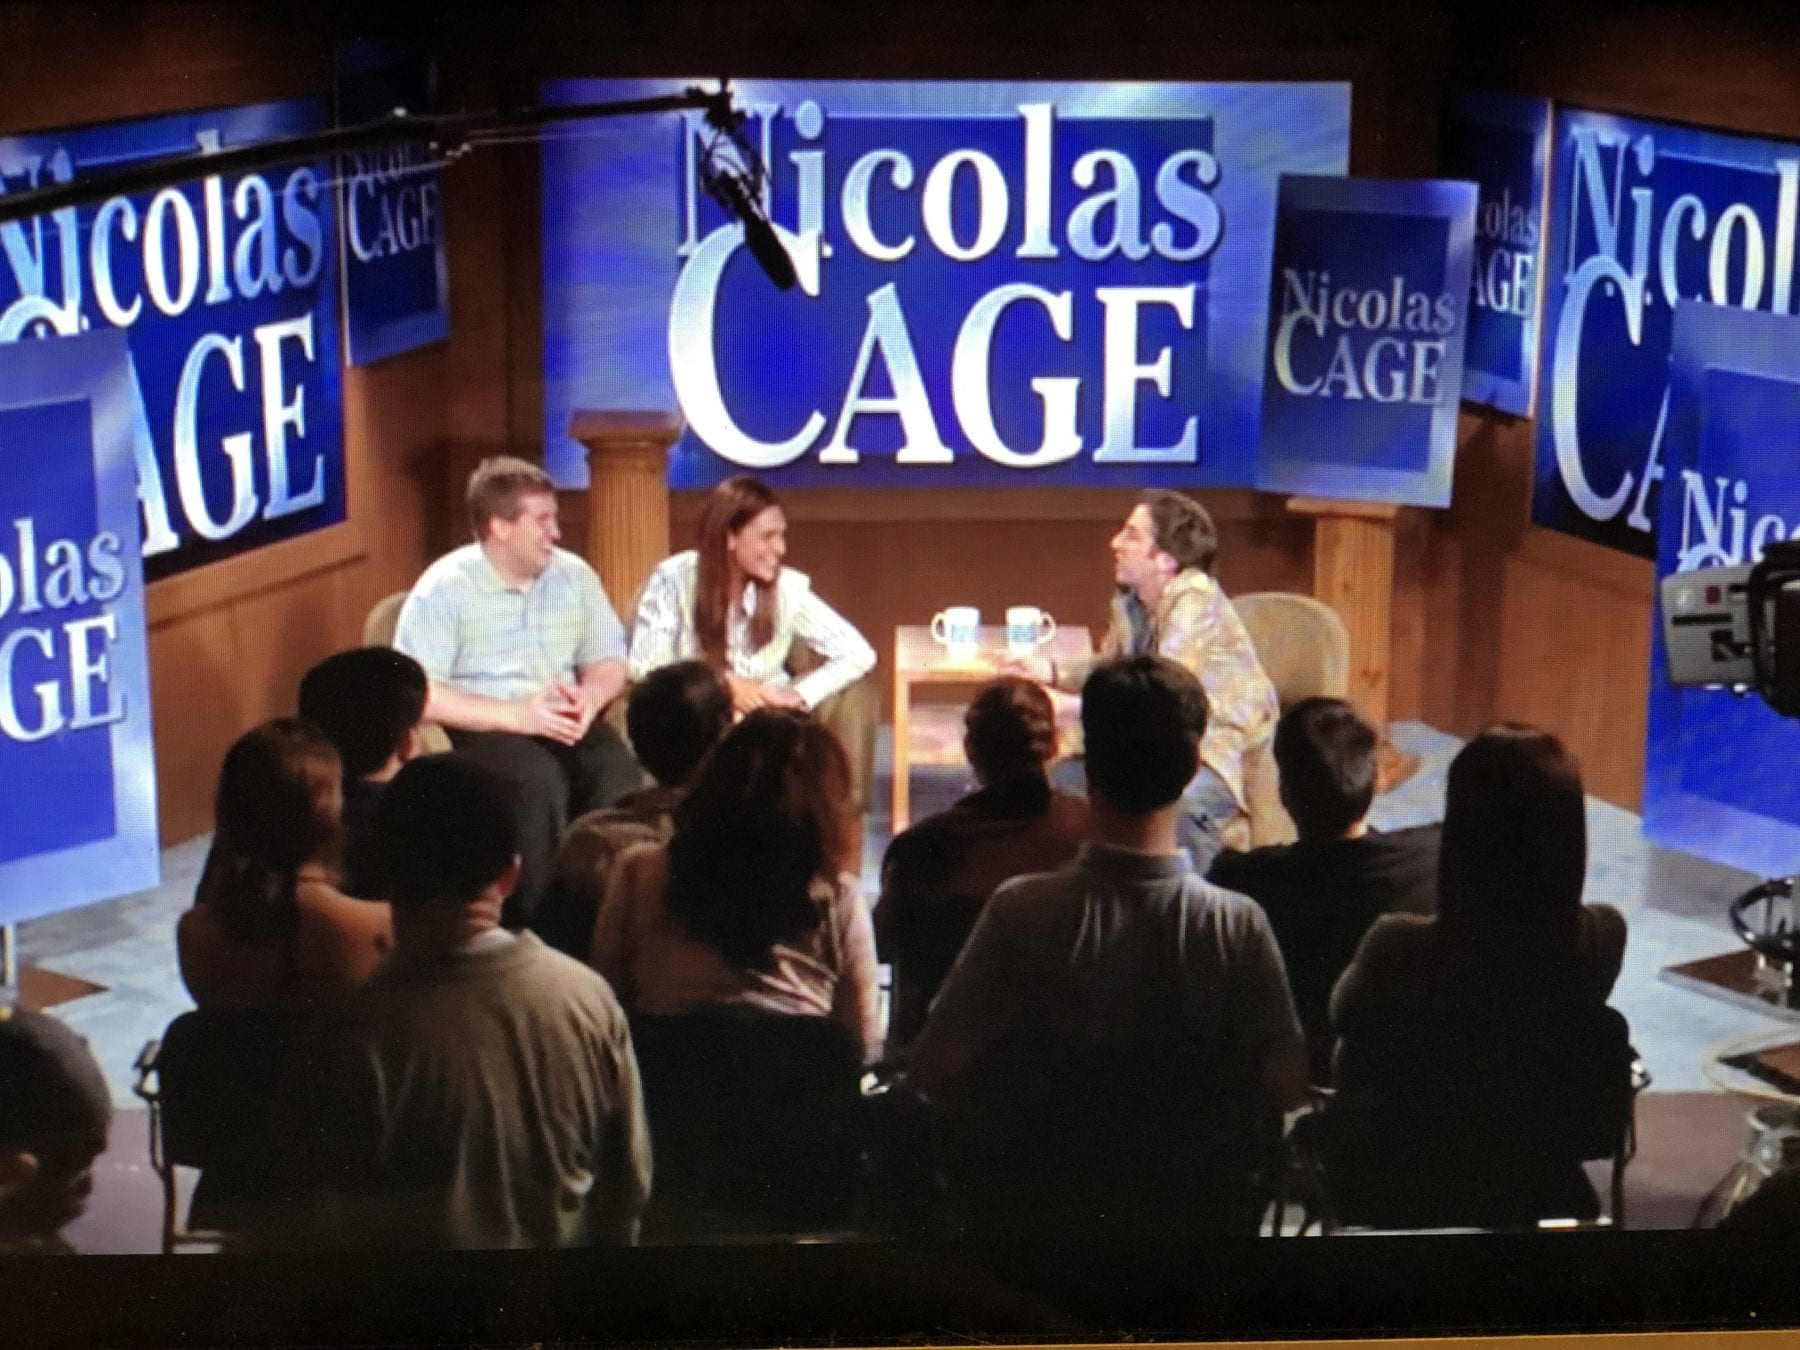 A sketch in which Nicholas Cage is a talk show host